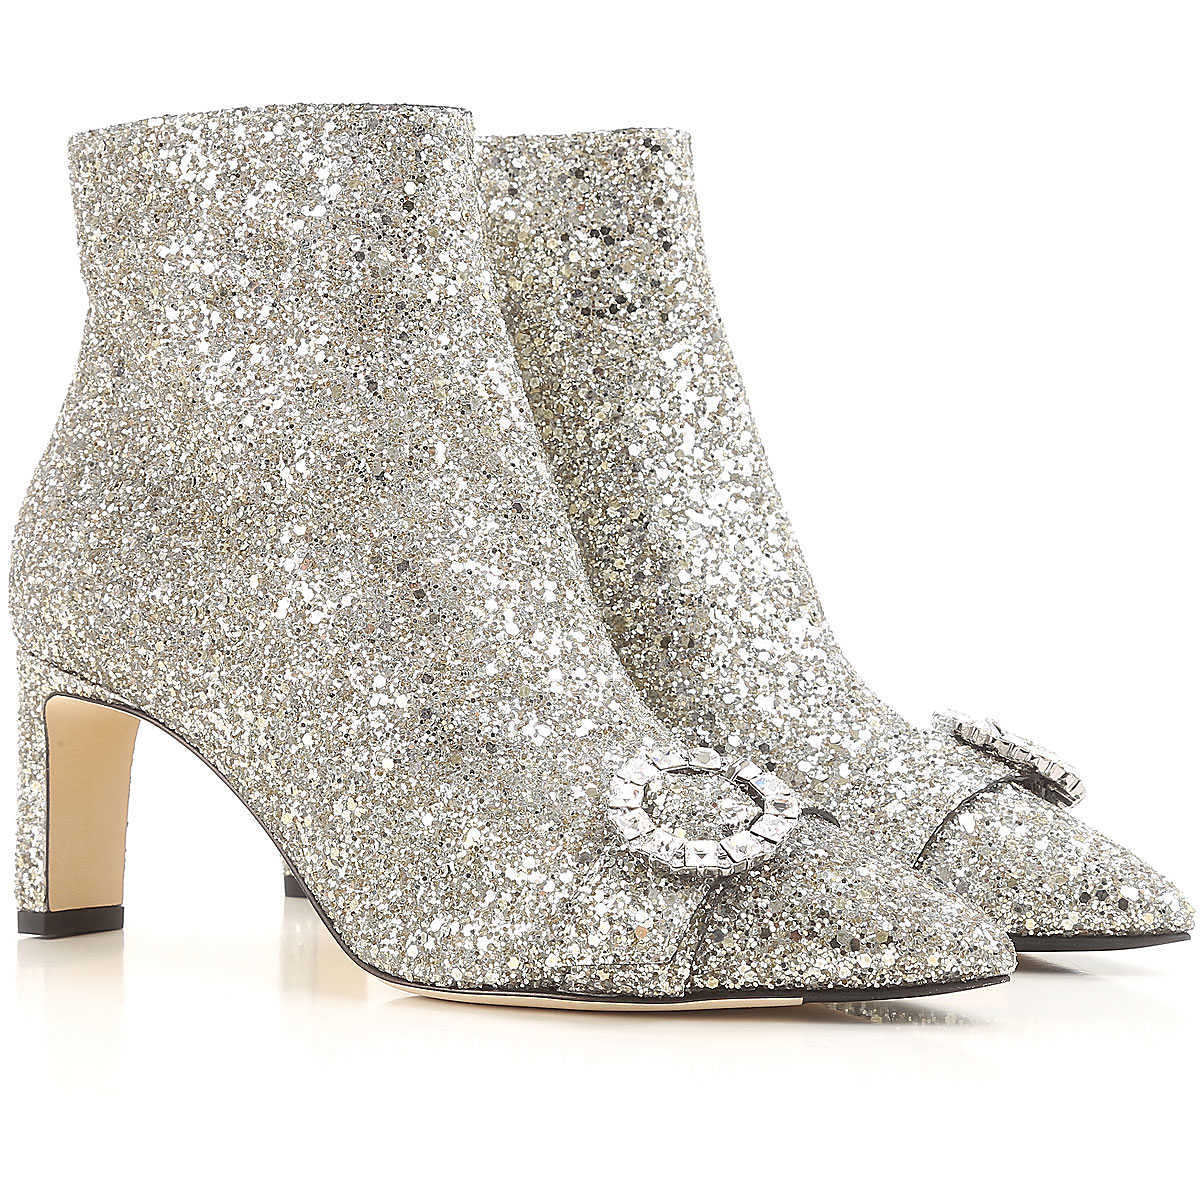 Jimmy Choo Boots for Women Booties On Sale in Outlet - GOOFASH